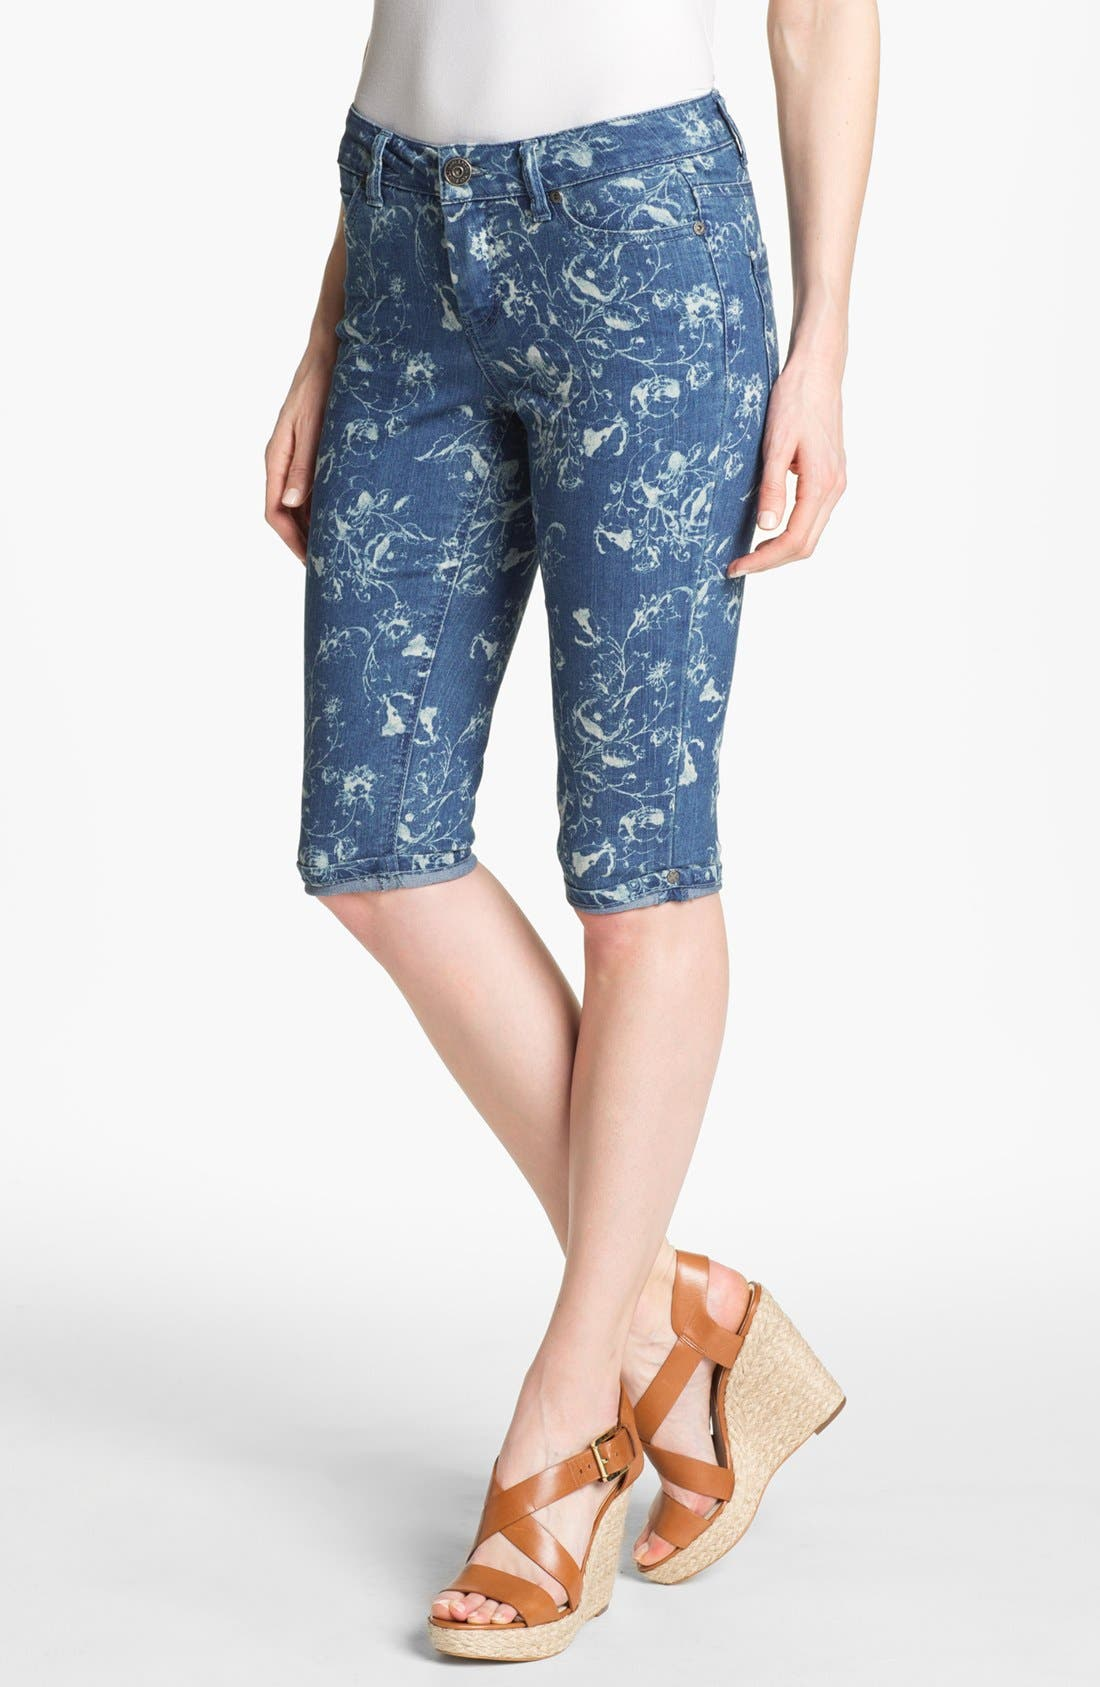 Main Image - Liverpool Jeans Company 'Julia' Short Capri Stretch Jeans